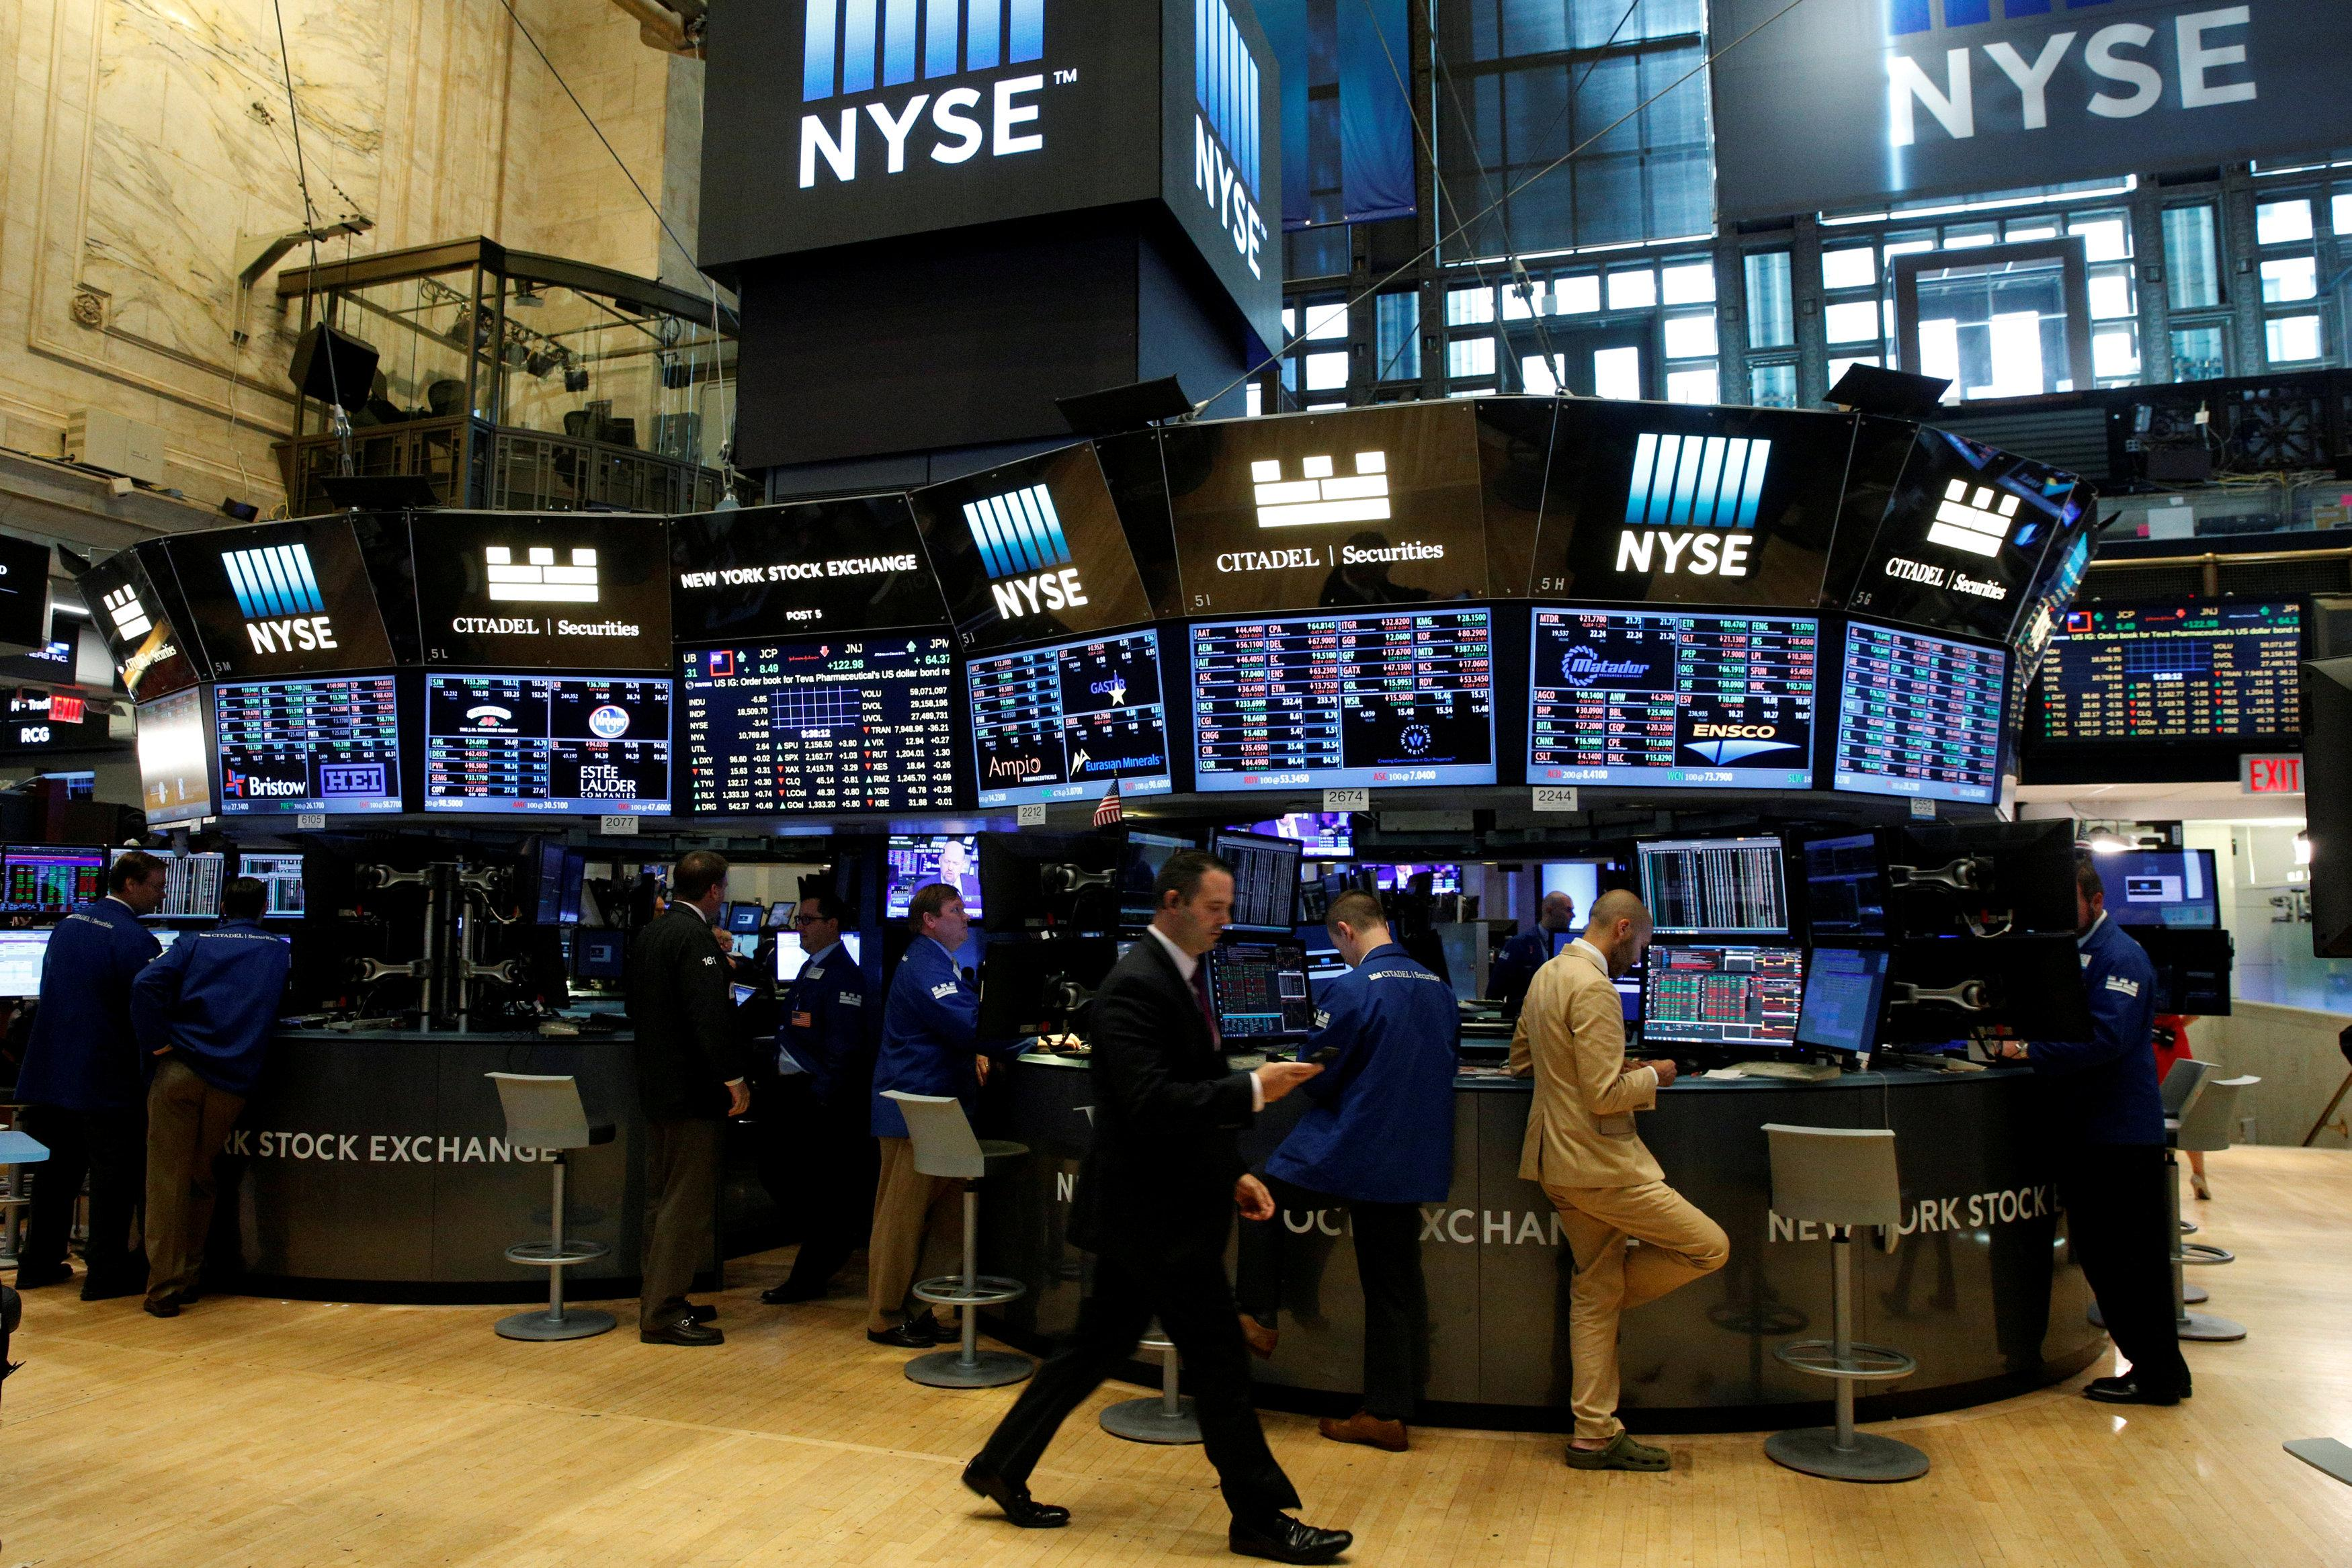 Volatility may hit Wall Street as Alphabet, Facebook leave tech...